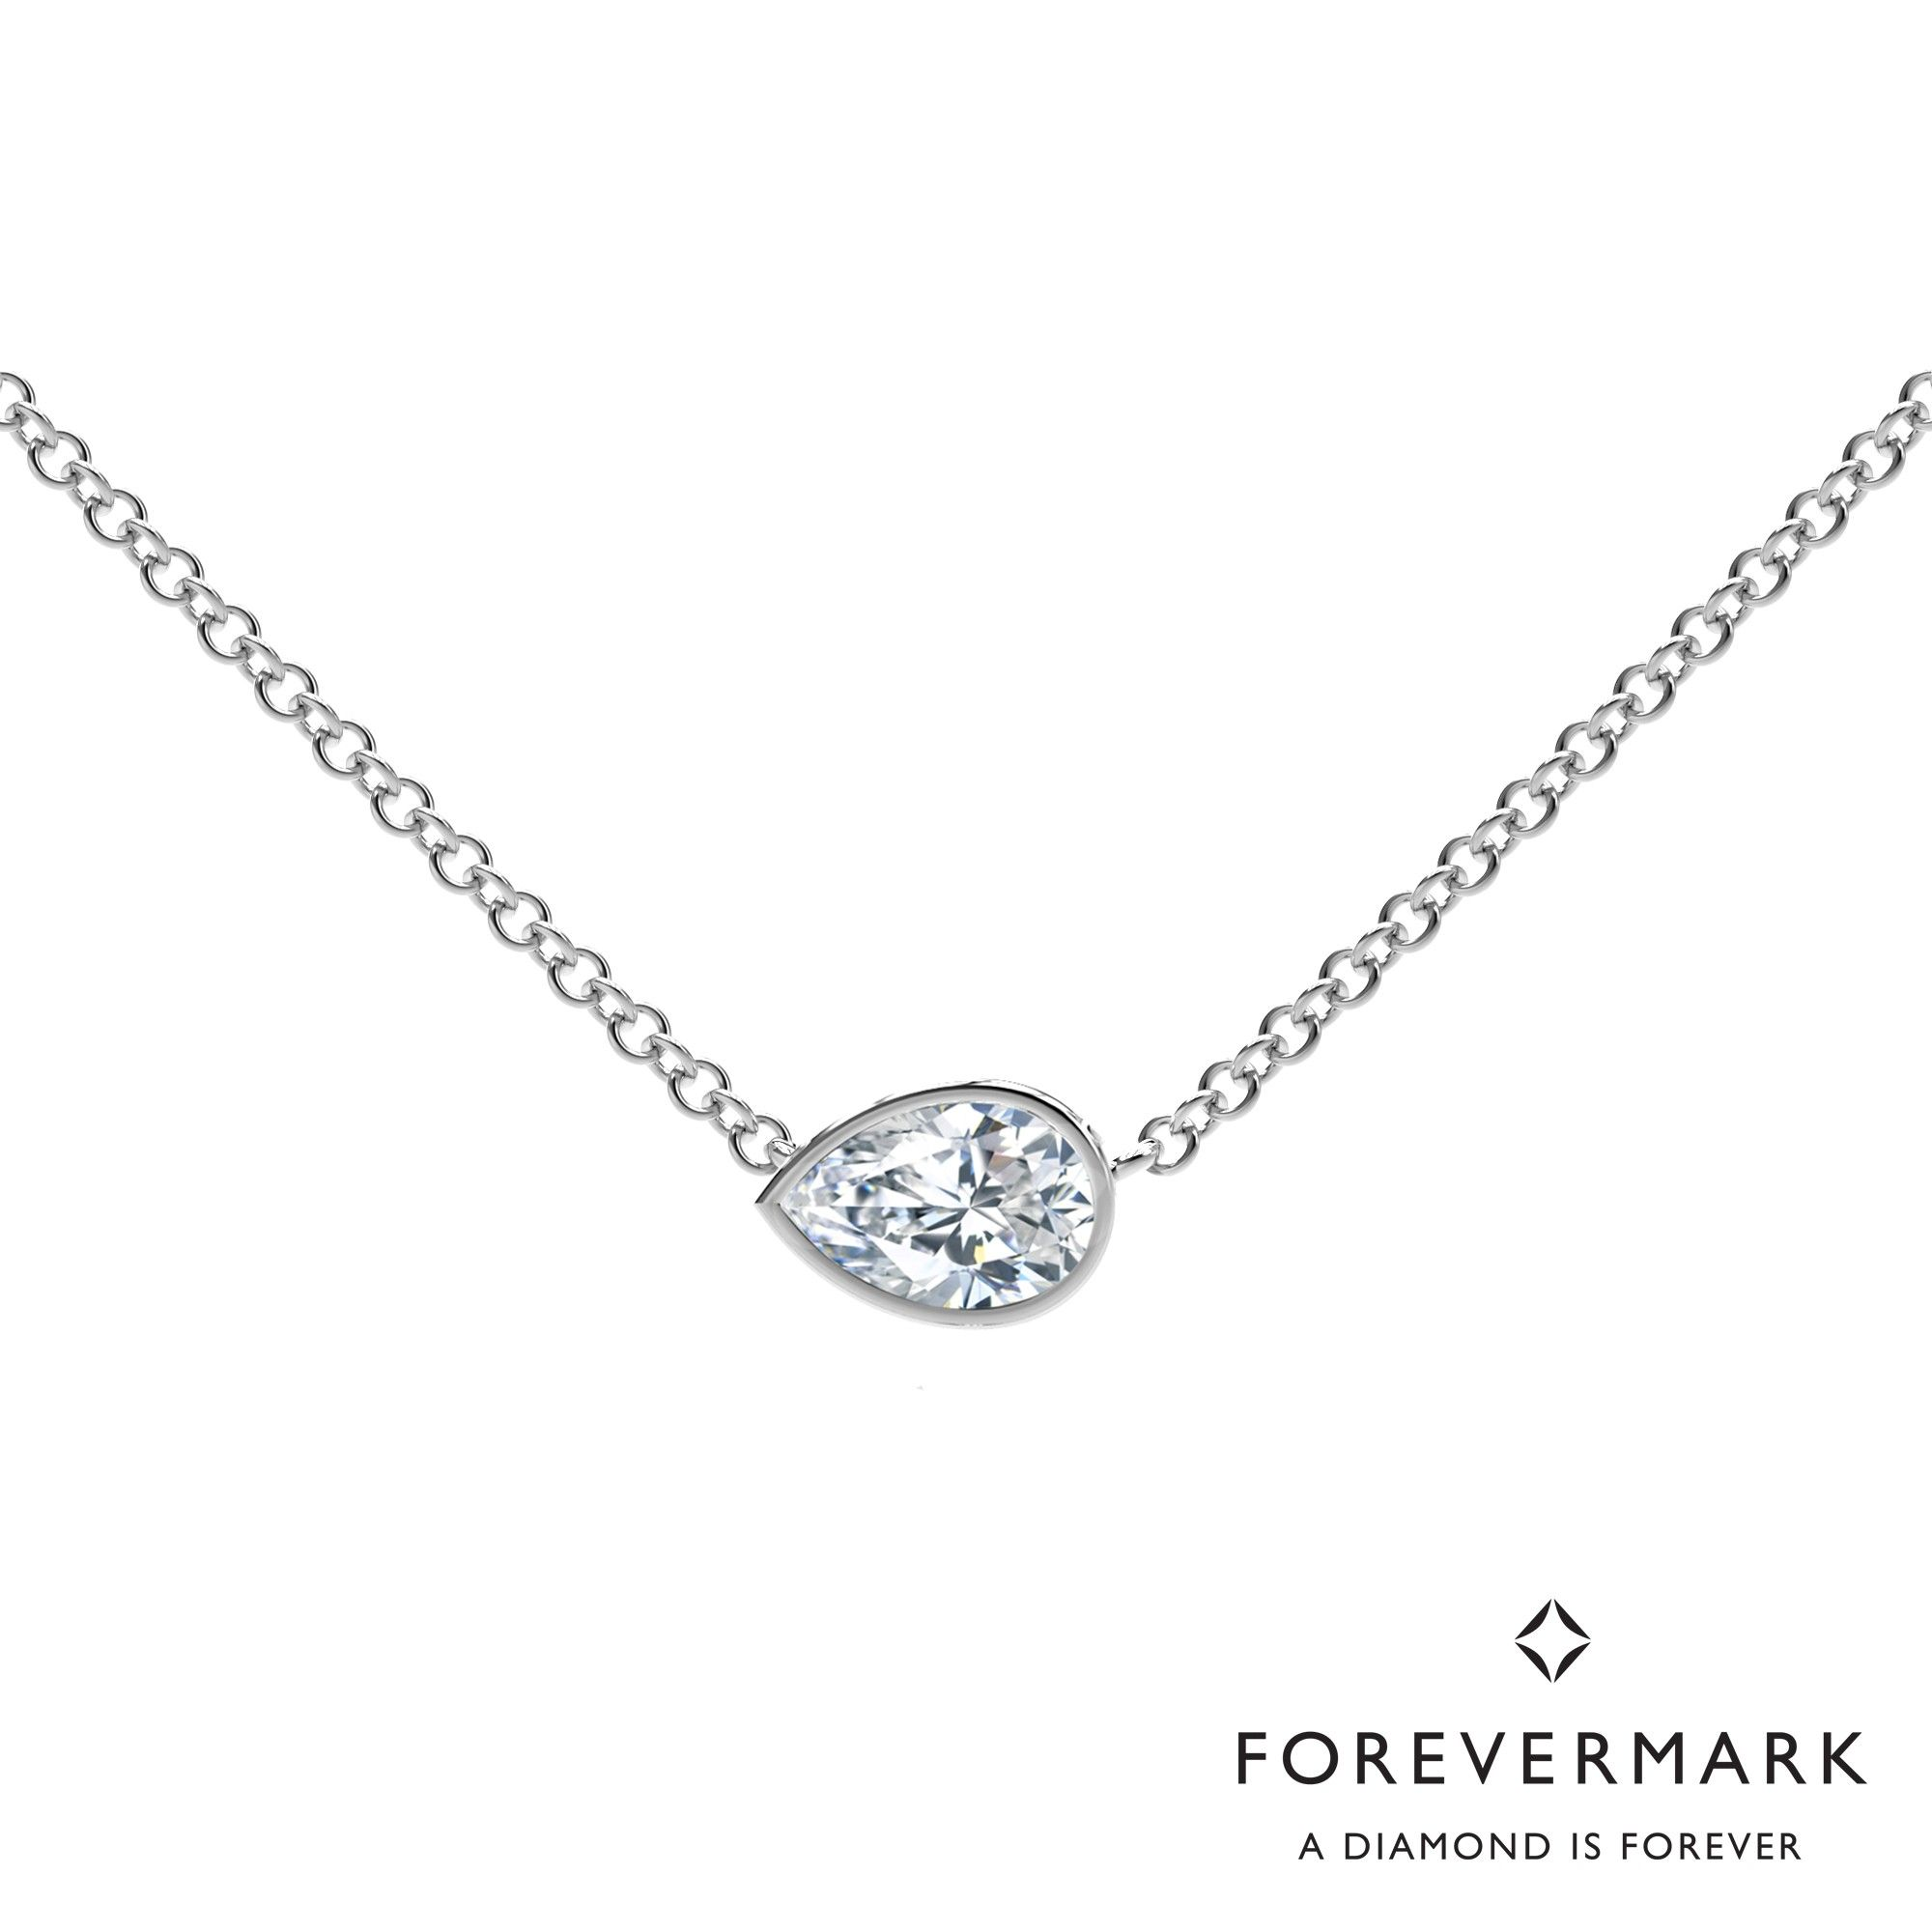 Forevermark tribute collection pear diamond necklace in kt white